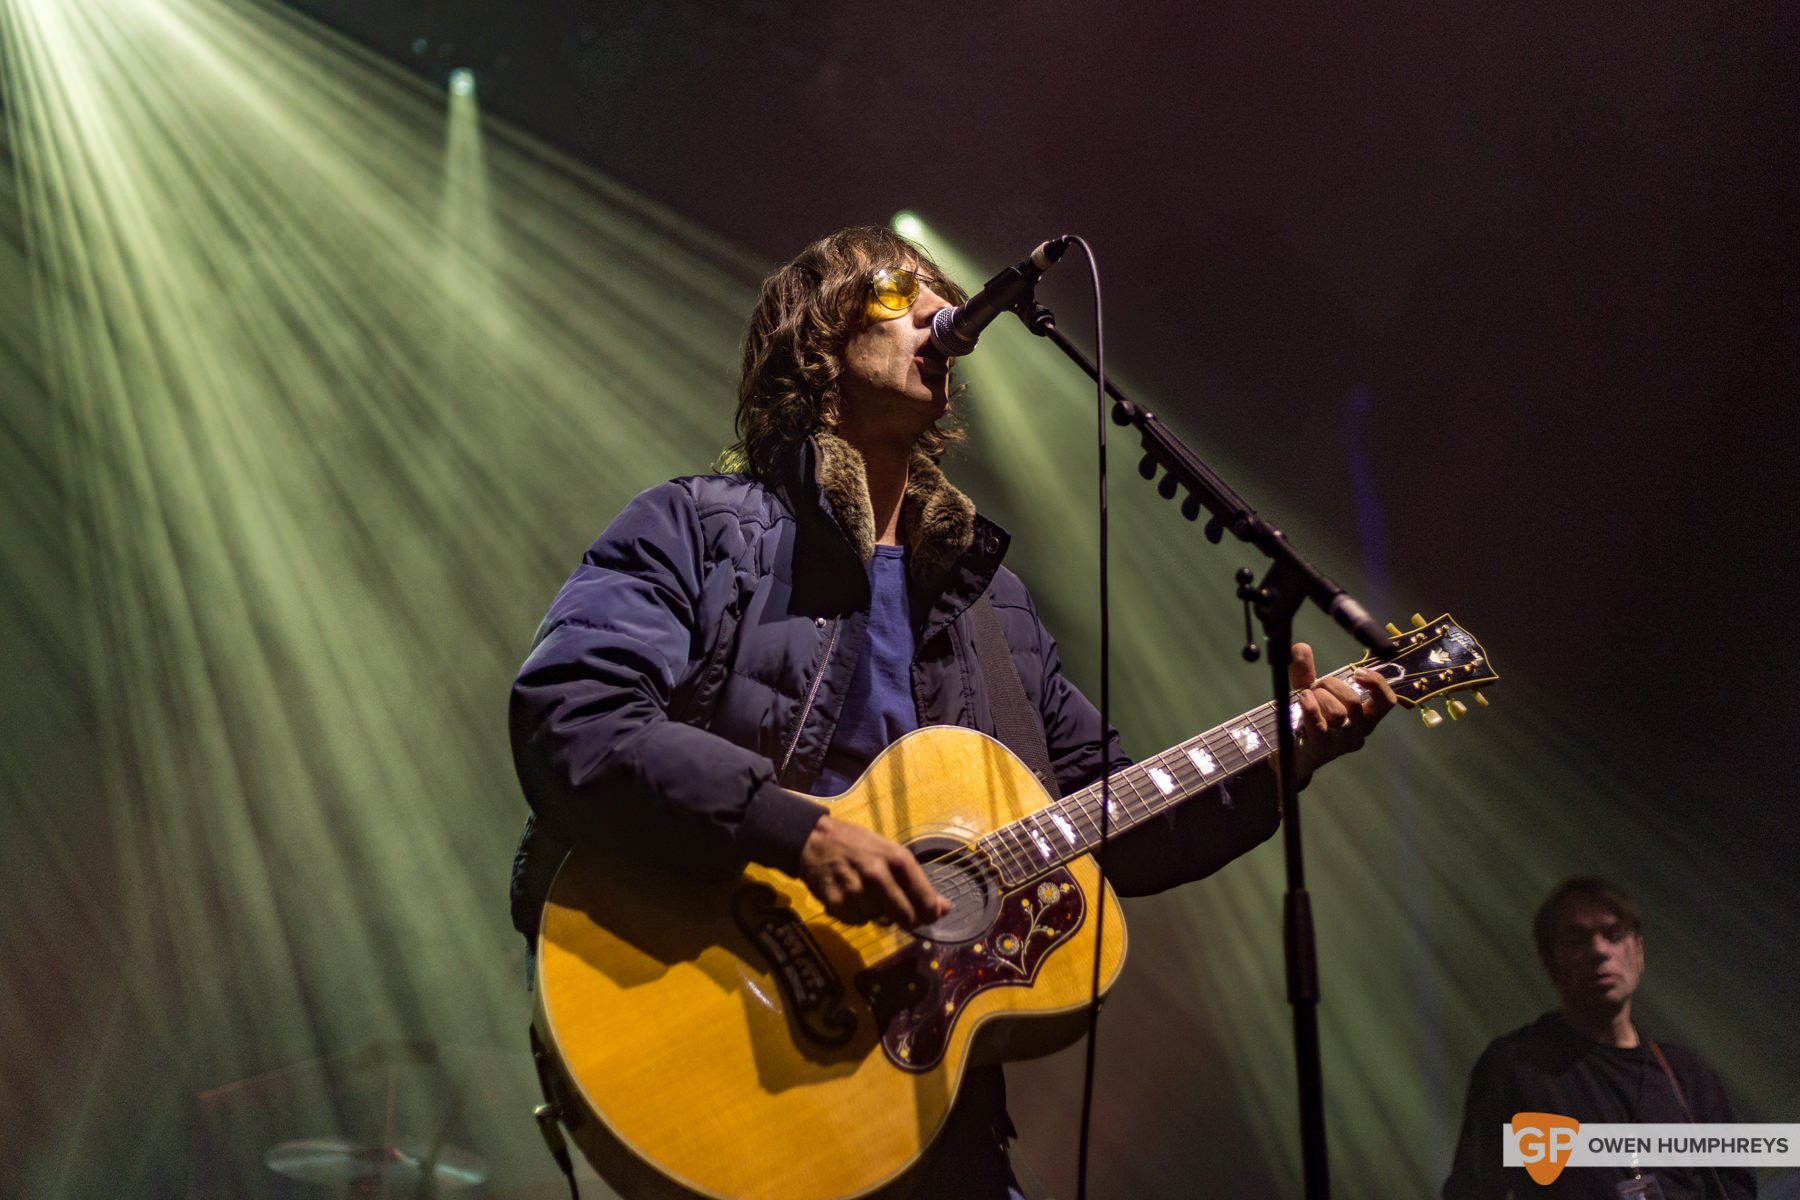 Richard Ashcroft at the Olympia Theatre. Photo by Owen Humphreys. www.owen.ie